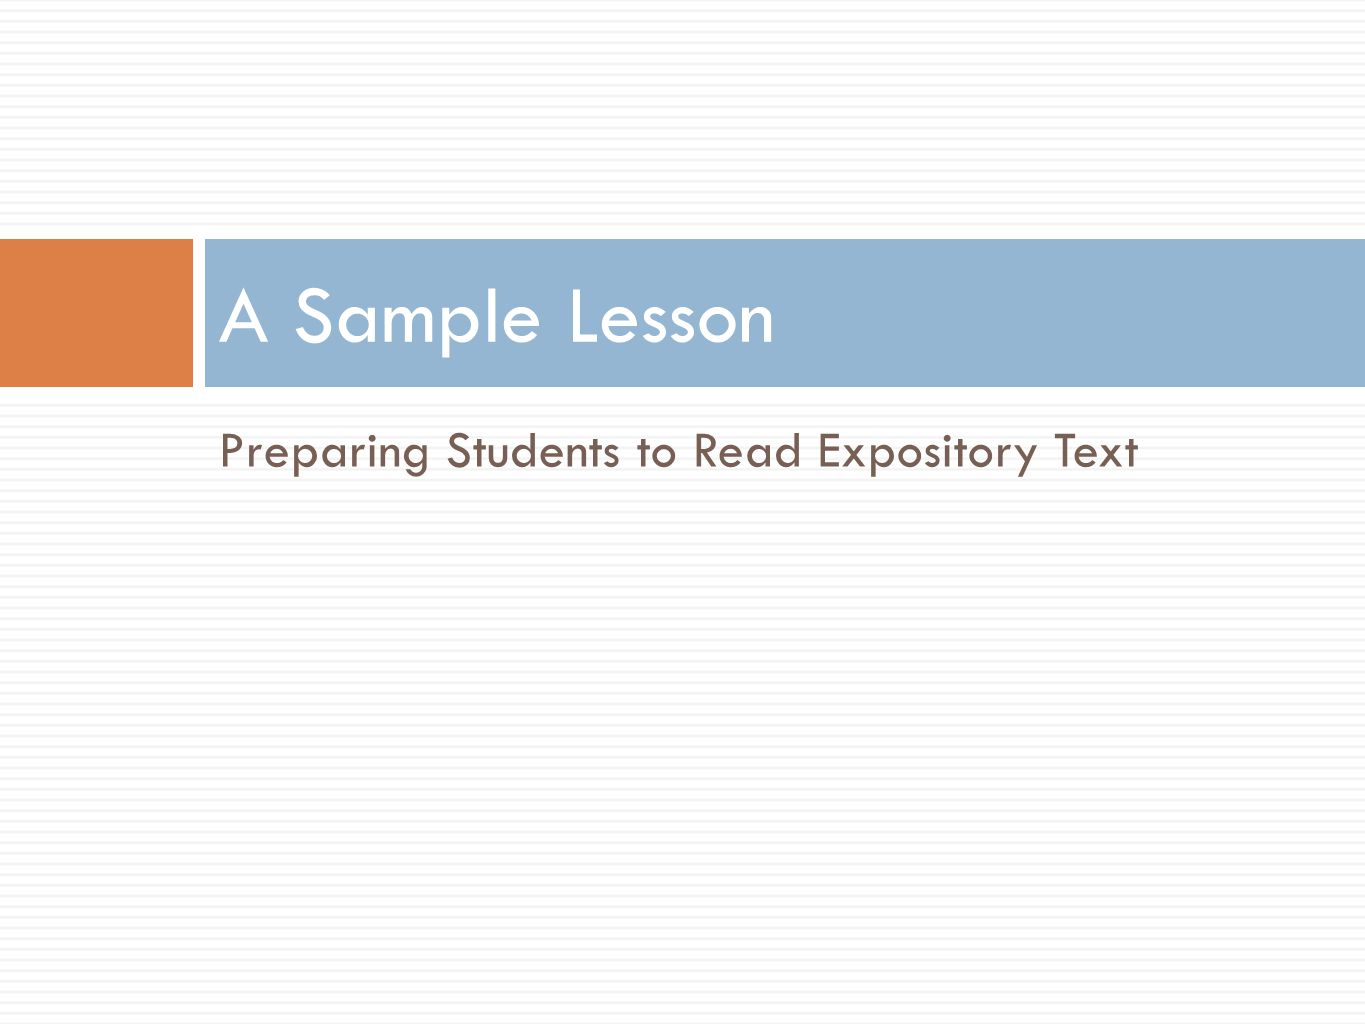 A Sample Lesson Preparing Students to Read Expository Text